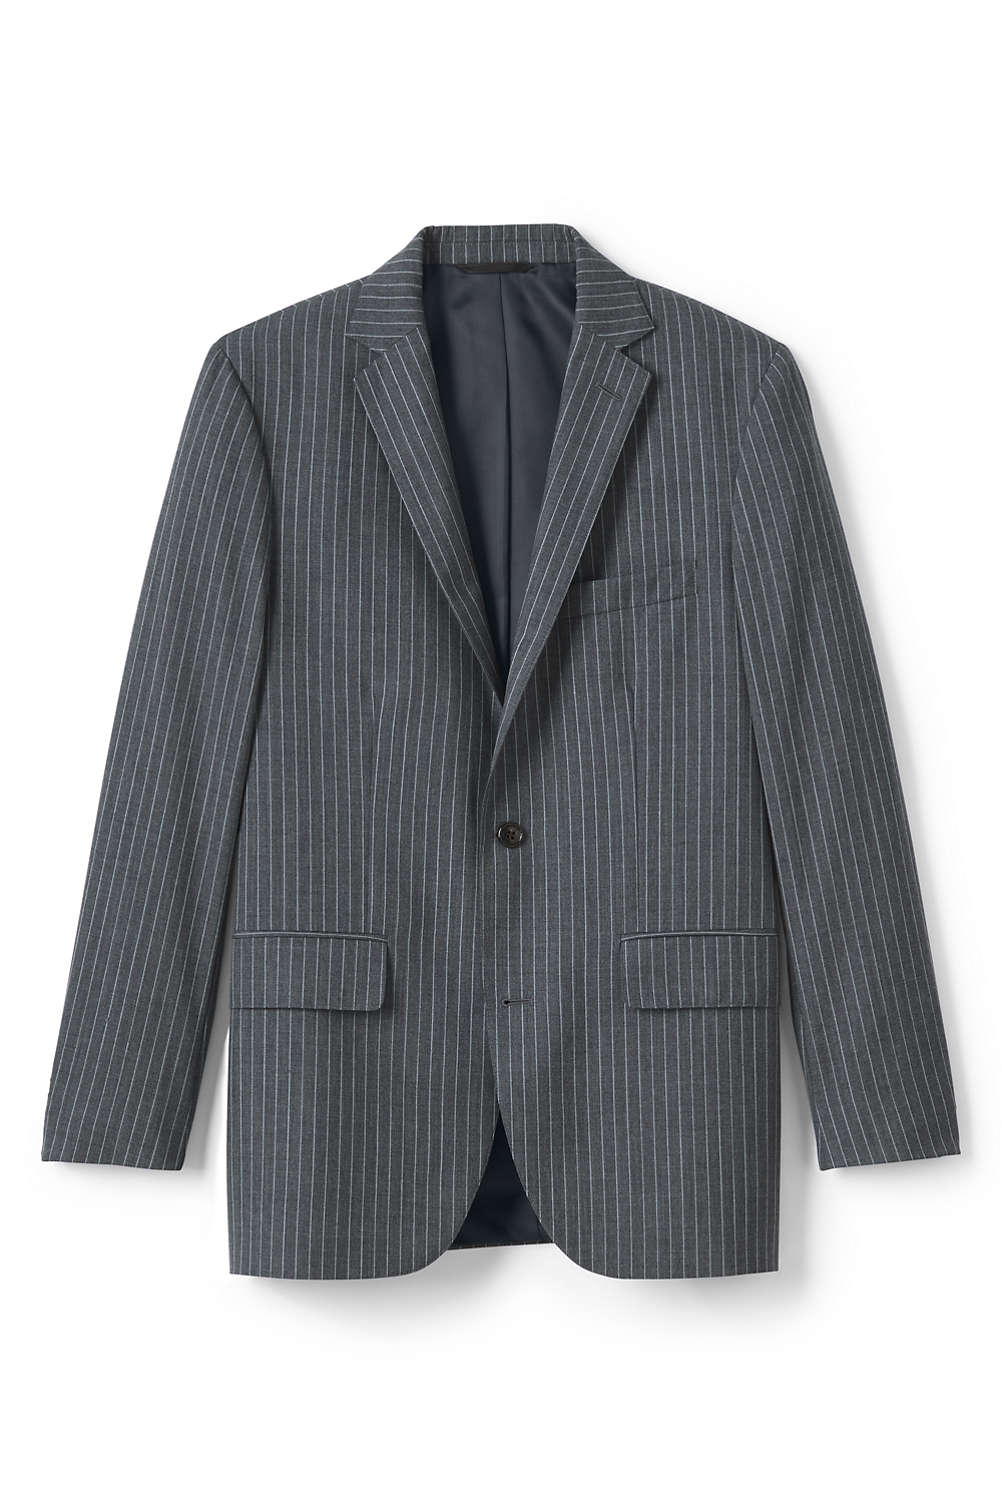 24a0a639ea32 Men s Traditional Fit Wool Year rounder Suit Jacket from Lands  End